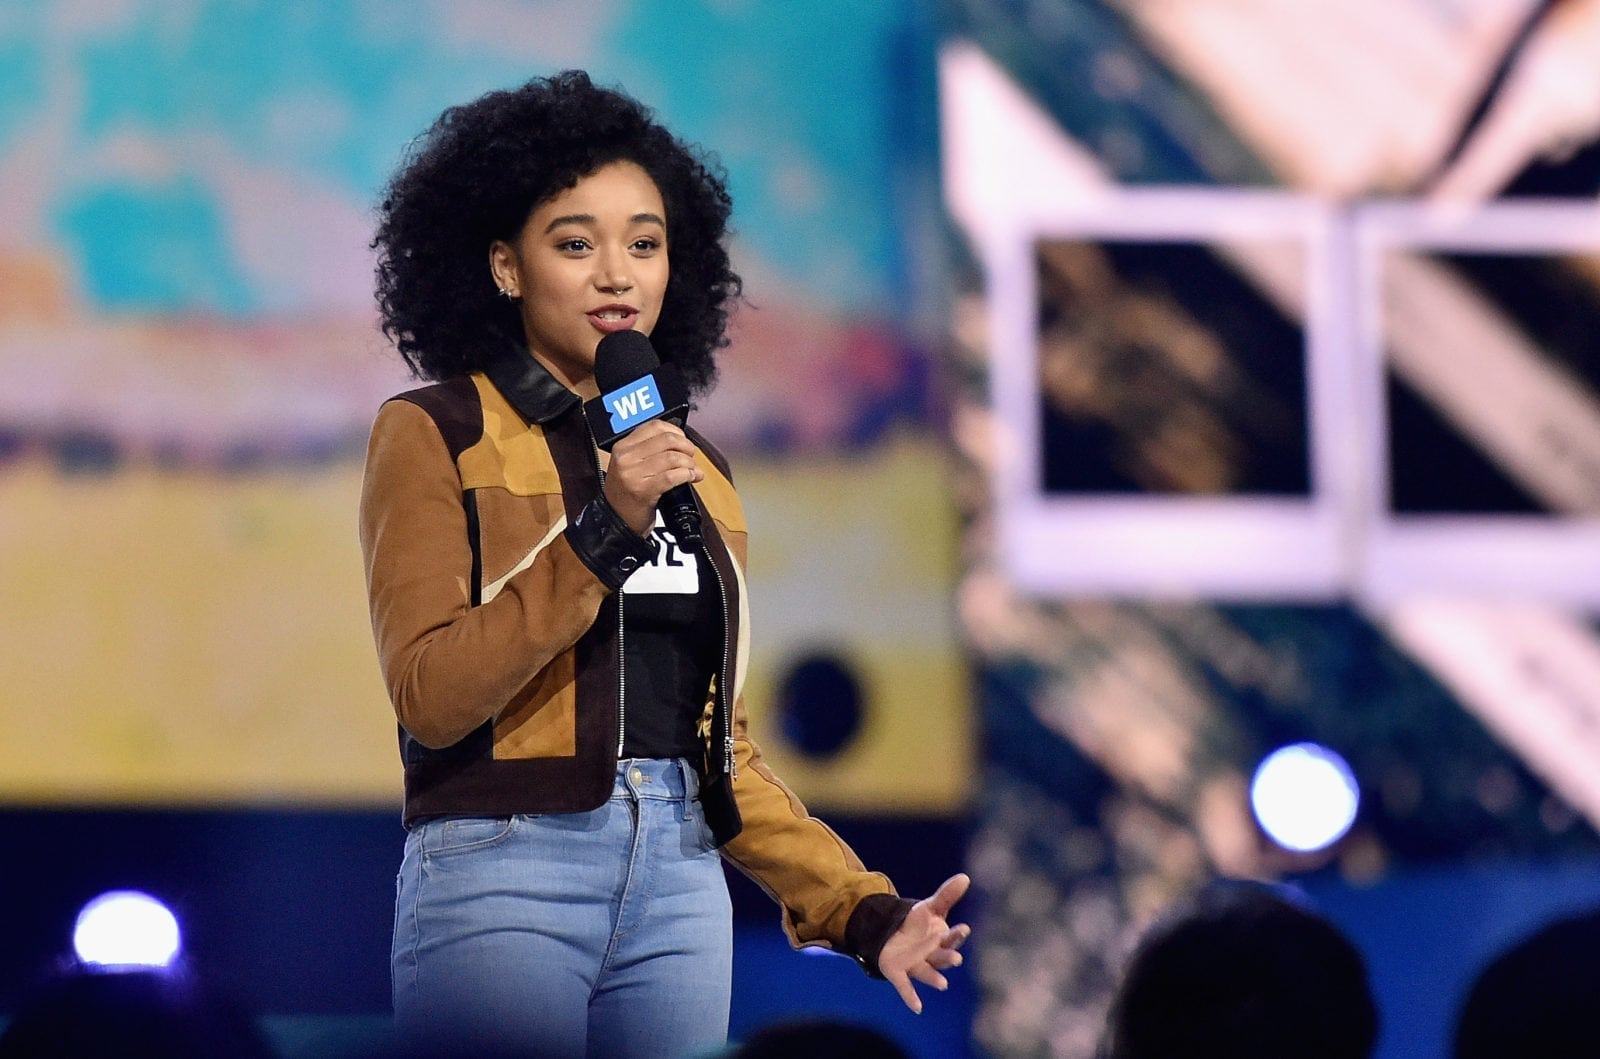 Hunger Games star Amandla Stenberg comes out as gay